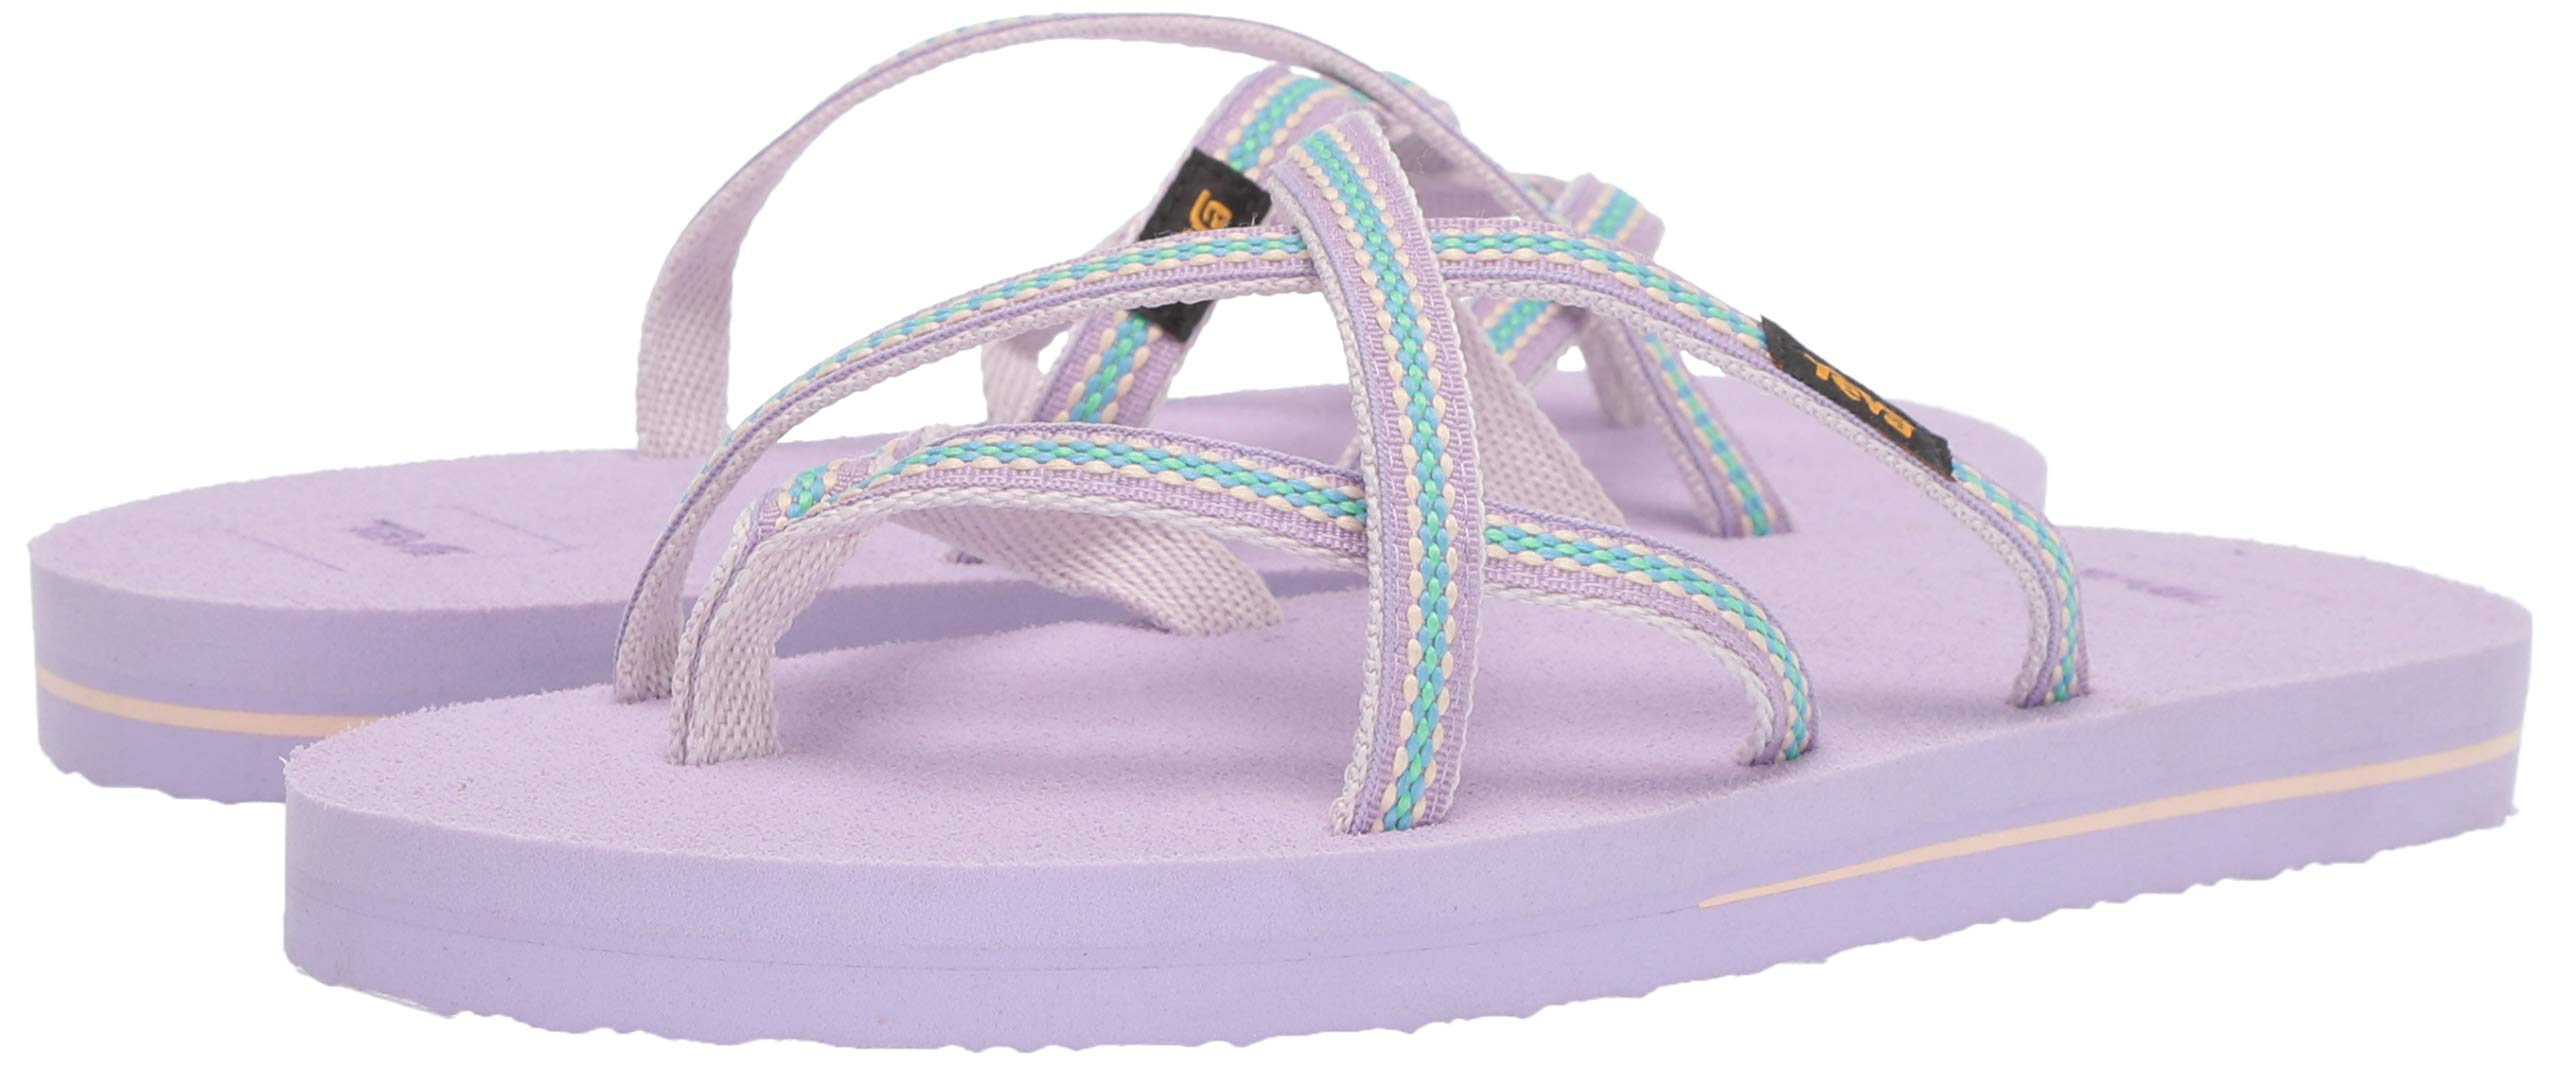 Teva Girls' Y Olowahu Sport Sandal, Lindi Orchid Bloom, 7 Medium US Big Kid by Teva (Image #6)